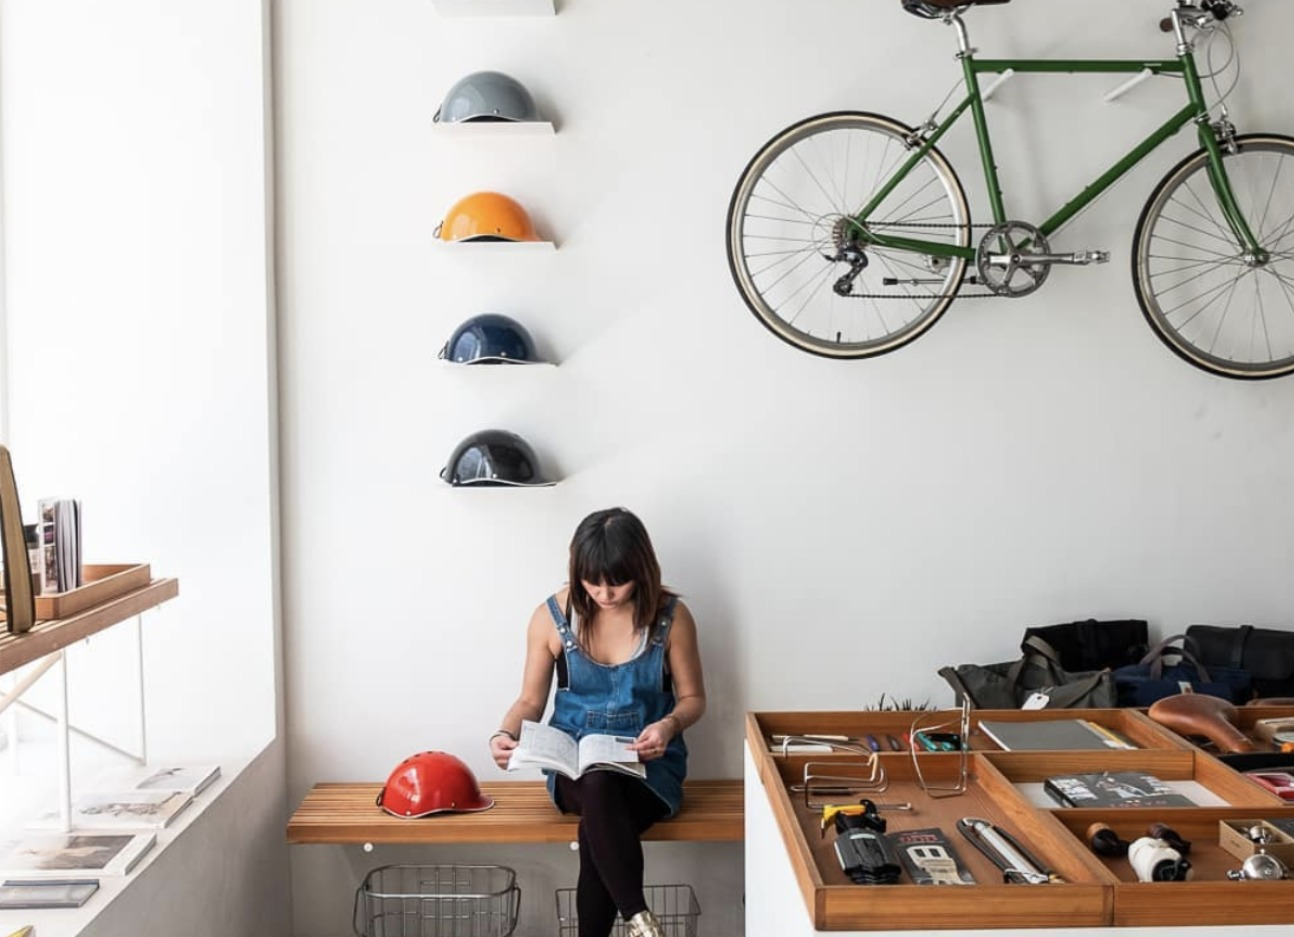 A girl reading a book in a bicycle shop